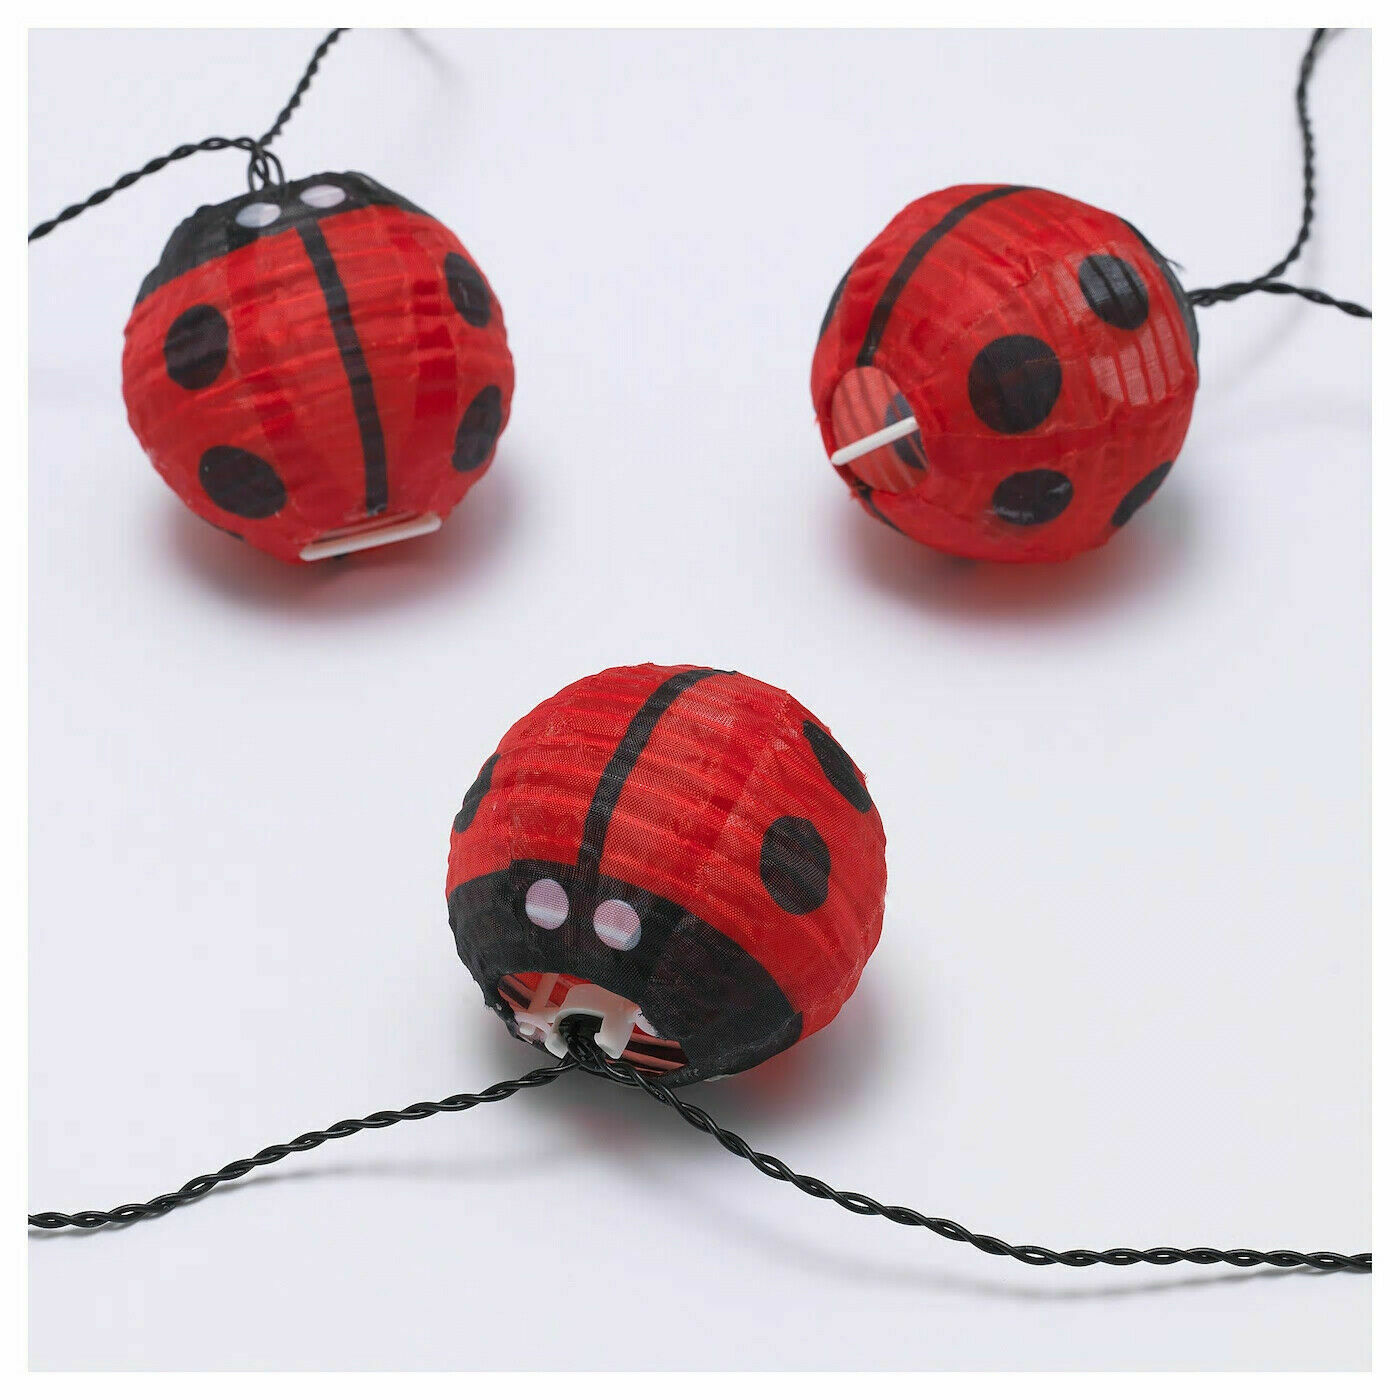 Ikea Solvinden Led String With 12 Lights Battery Operated Outdoor Bumble Bee For Sale Online Ebay